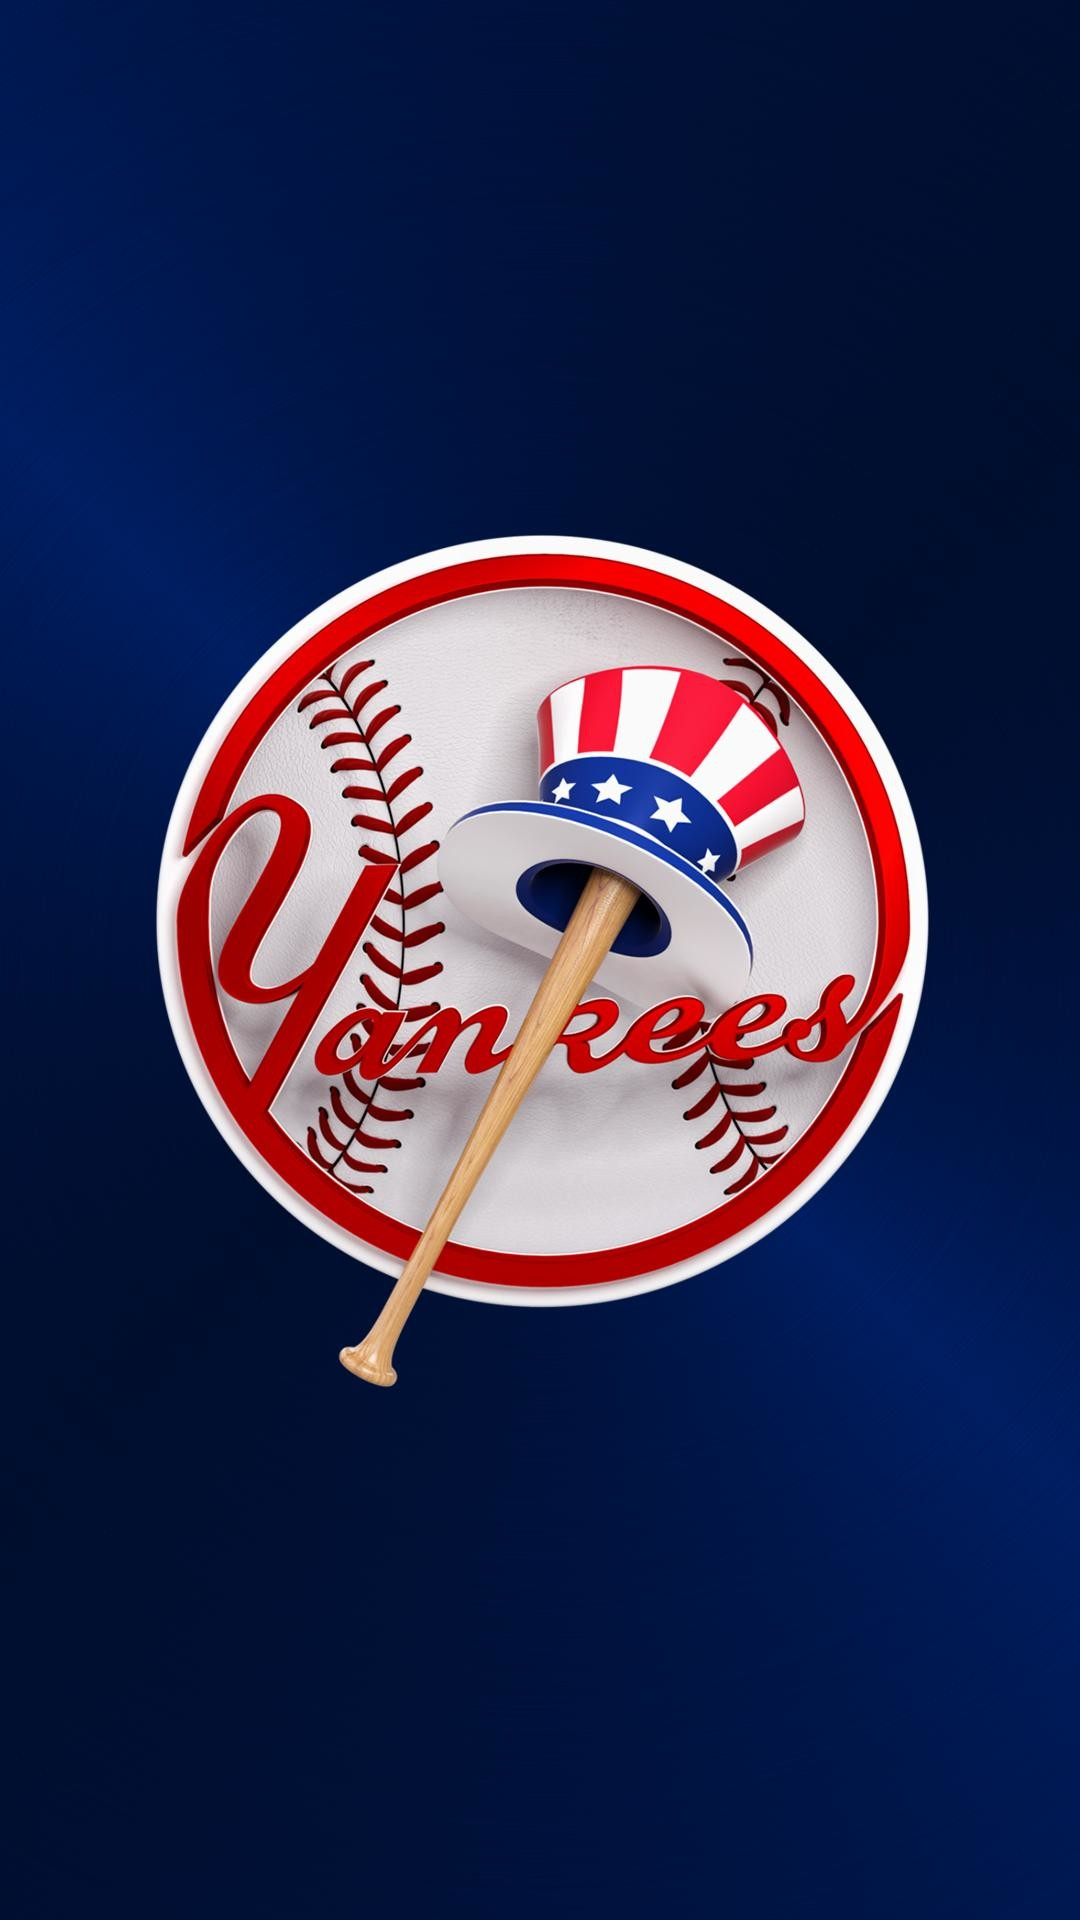 wallpaper.wiki-HD-Baseball-Background-for-Iphone-1-